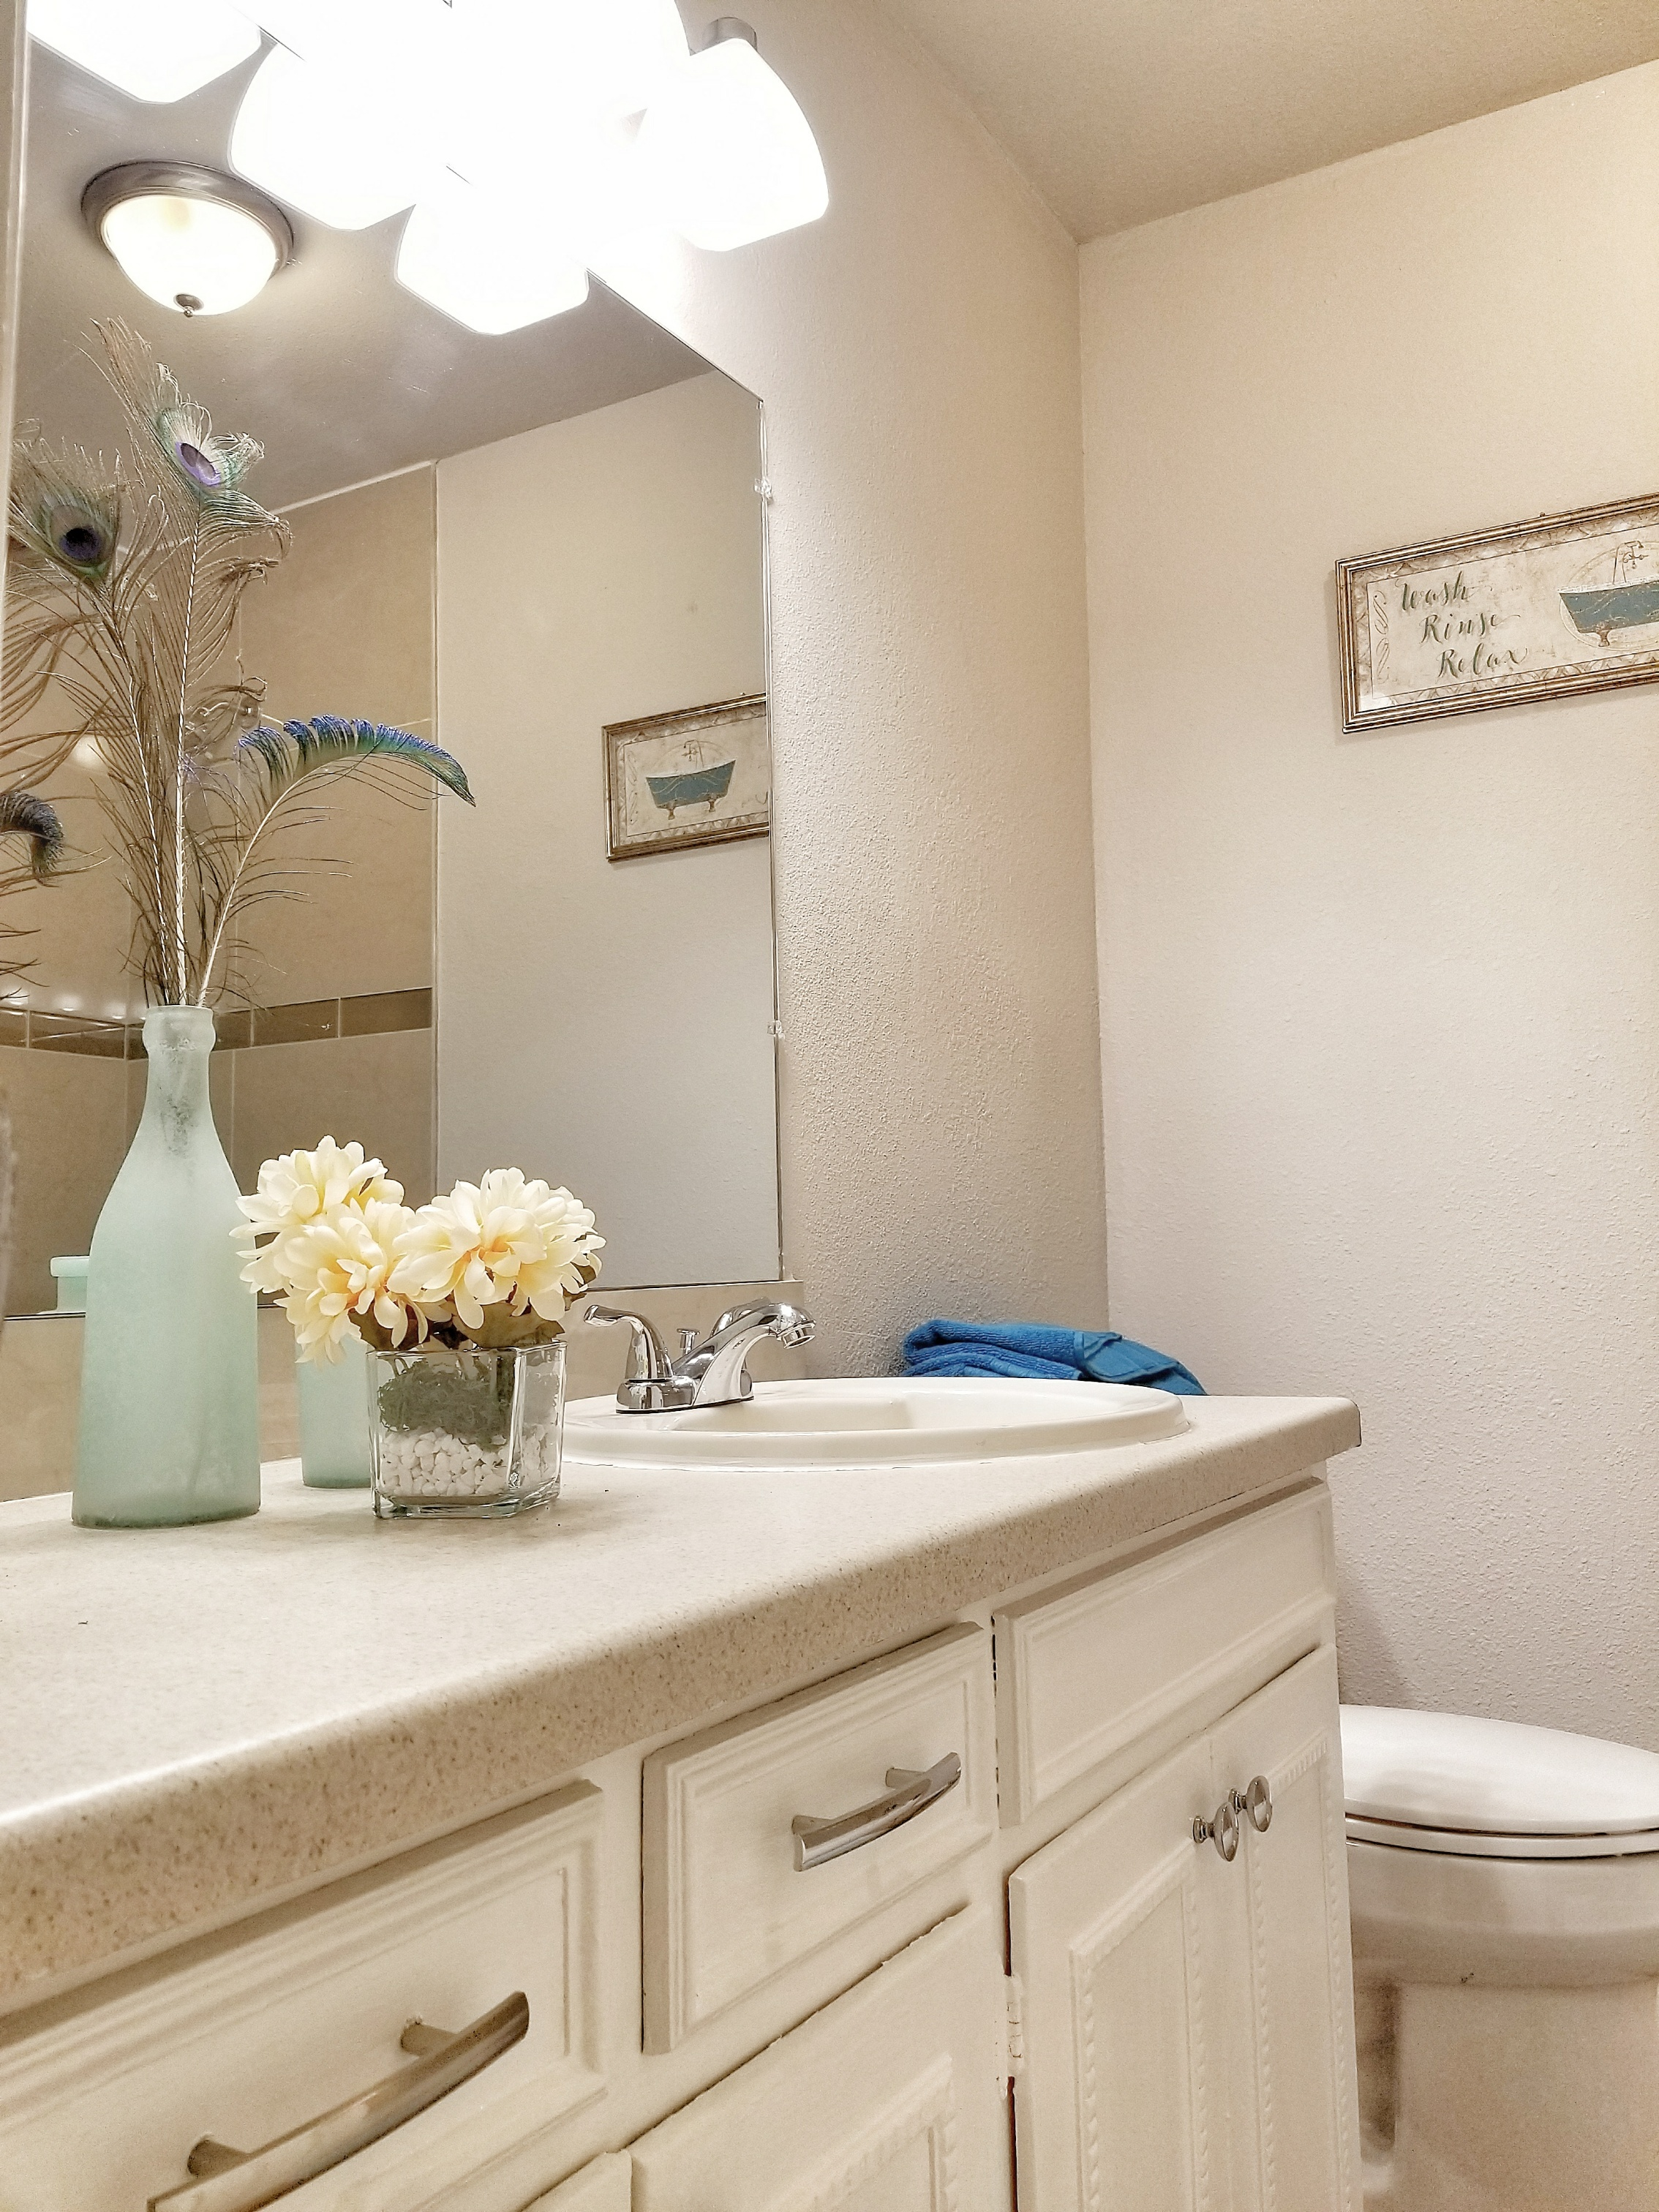 House In Austin Texas For Sale Bitcoin Real Estate Inc   Bathroom Lighting  Austin Tx